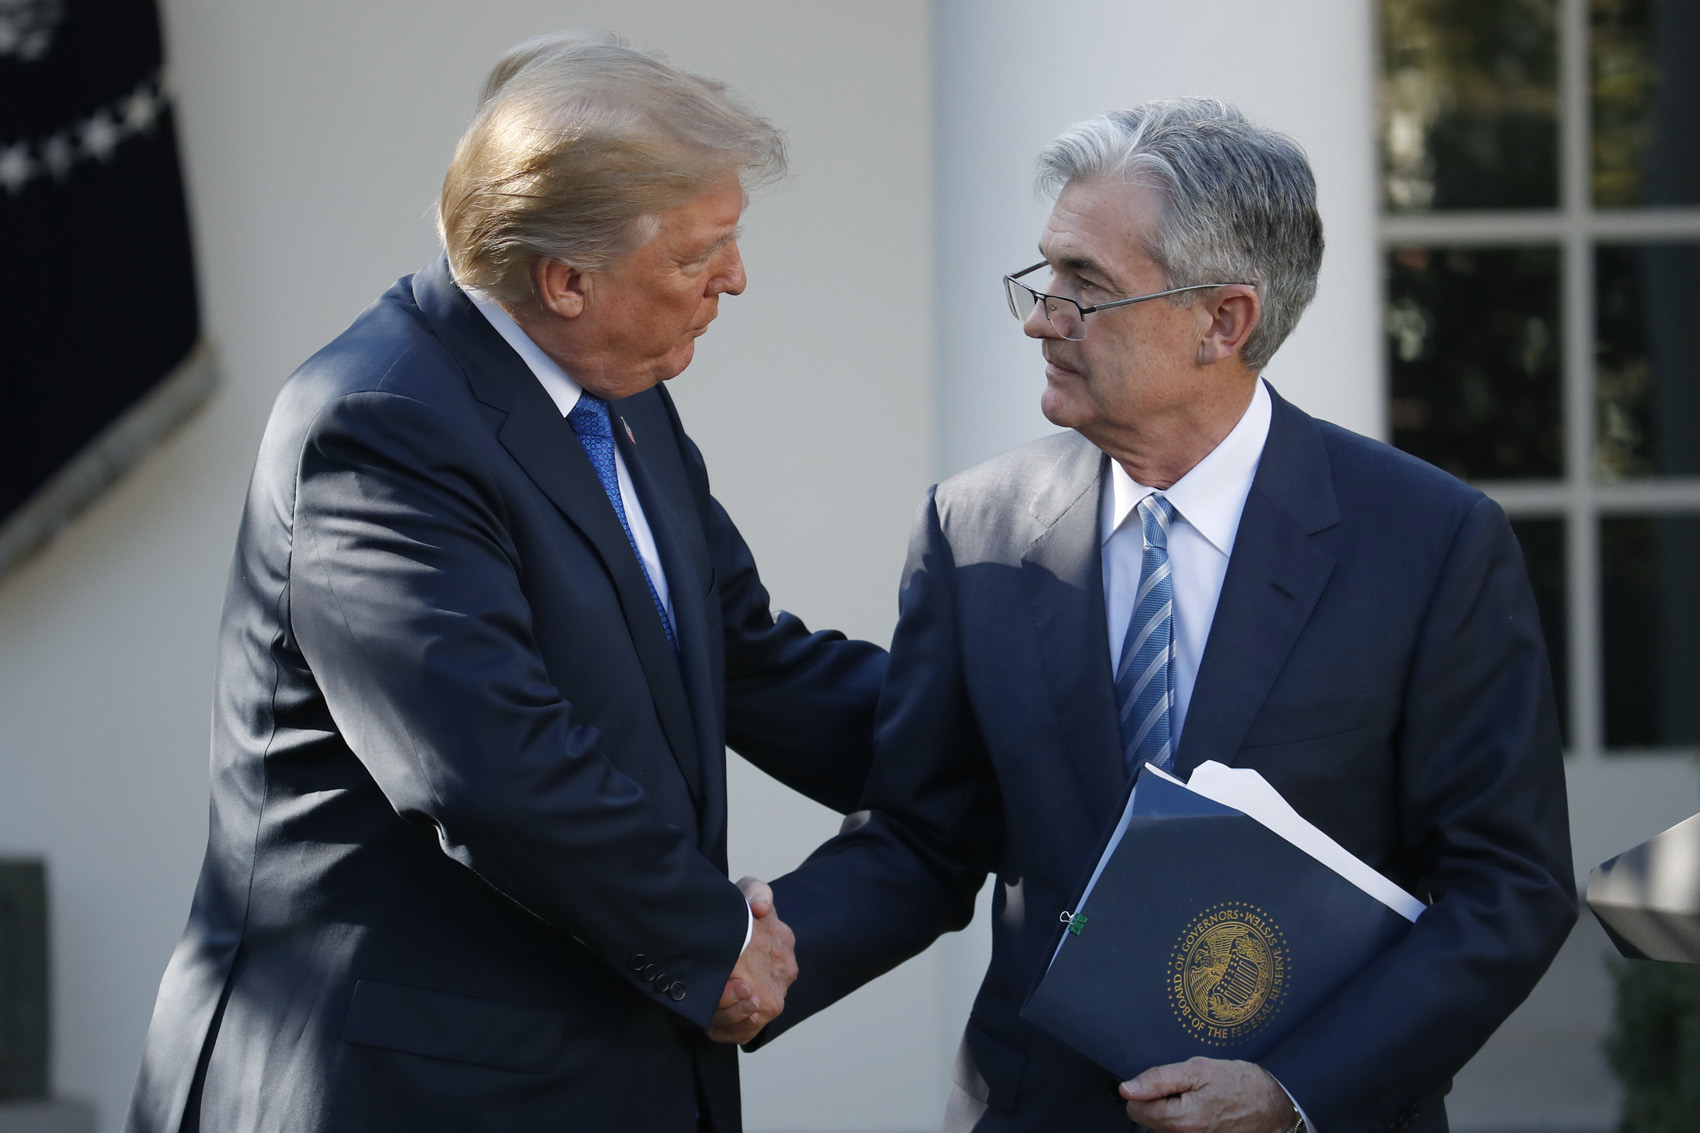 President Donald Trump shakes hands with then-Federal Reserve board member Jerome Powell after announcing him as his nominee for the next chair of the Federal Reserve, in the Rose Garden of the White House in Washington, Nov. 2, 2017. (Alex Brandon, File/AP)